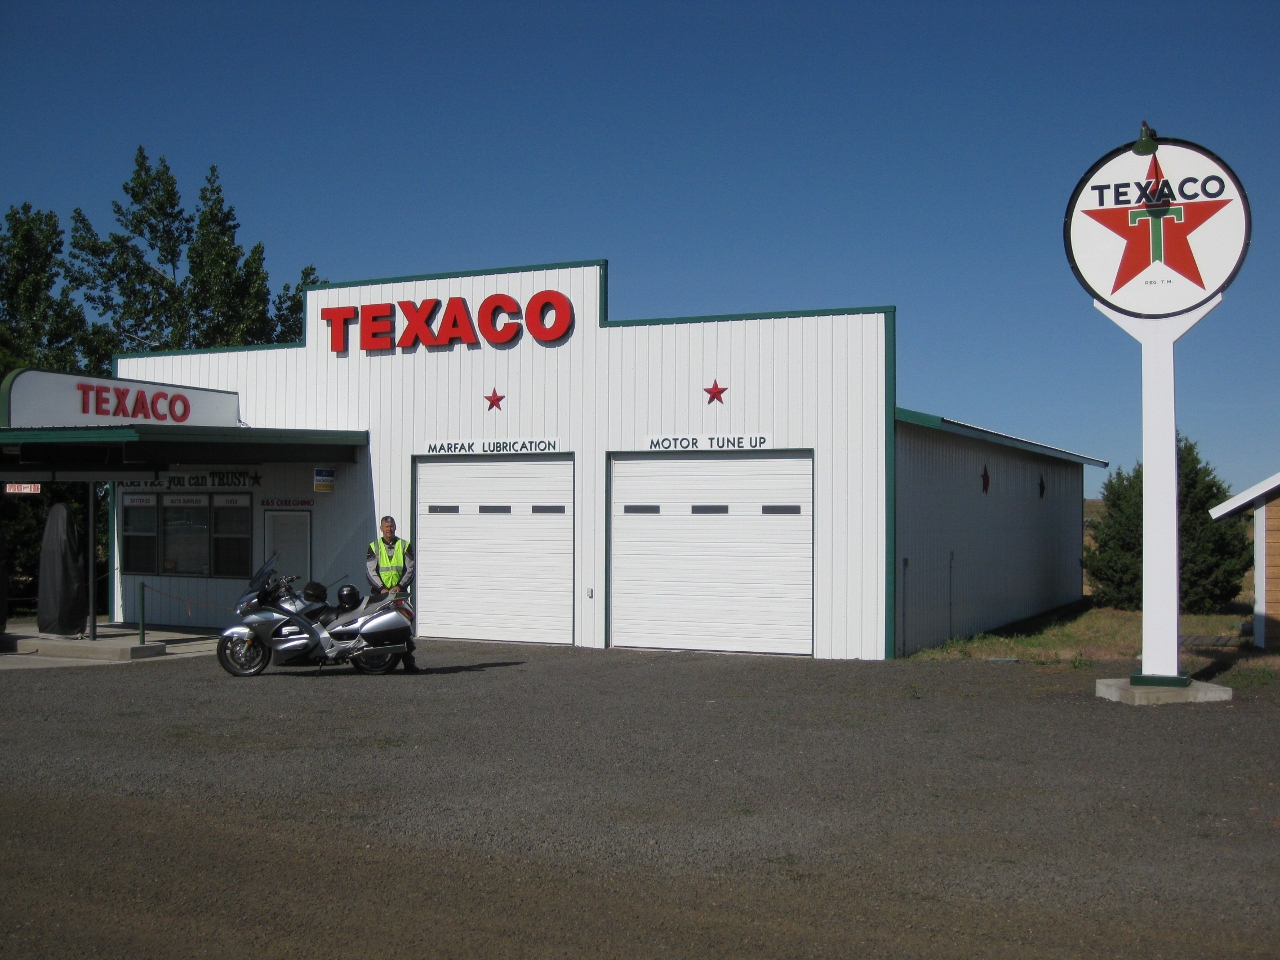 Northwest Motorcycle Rides And Oregon Rural Post Office